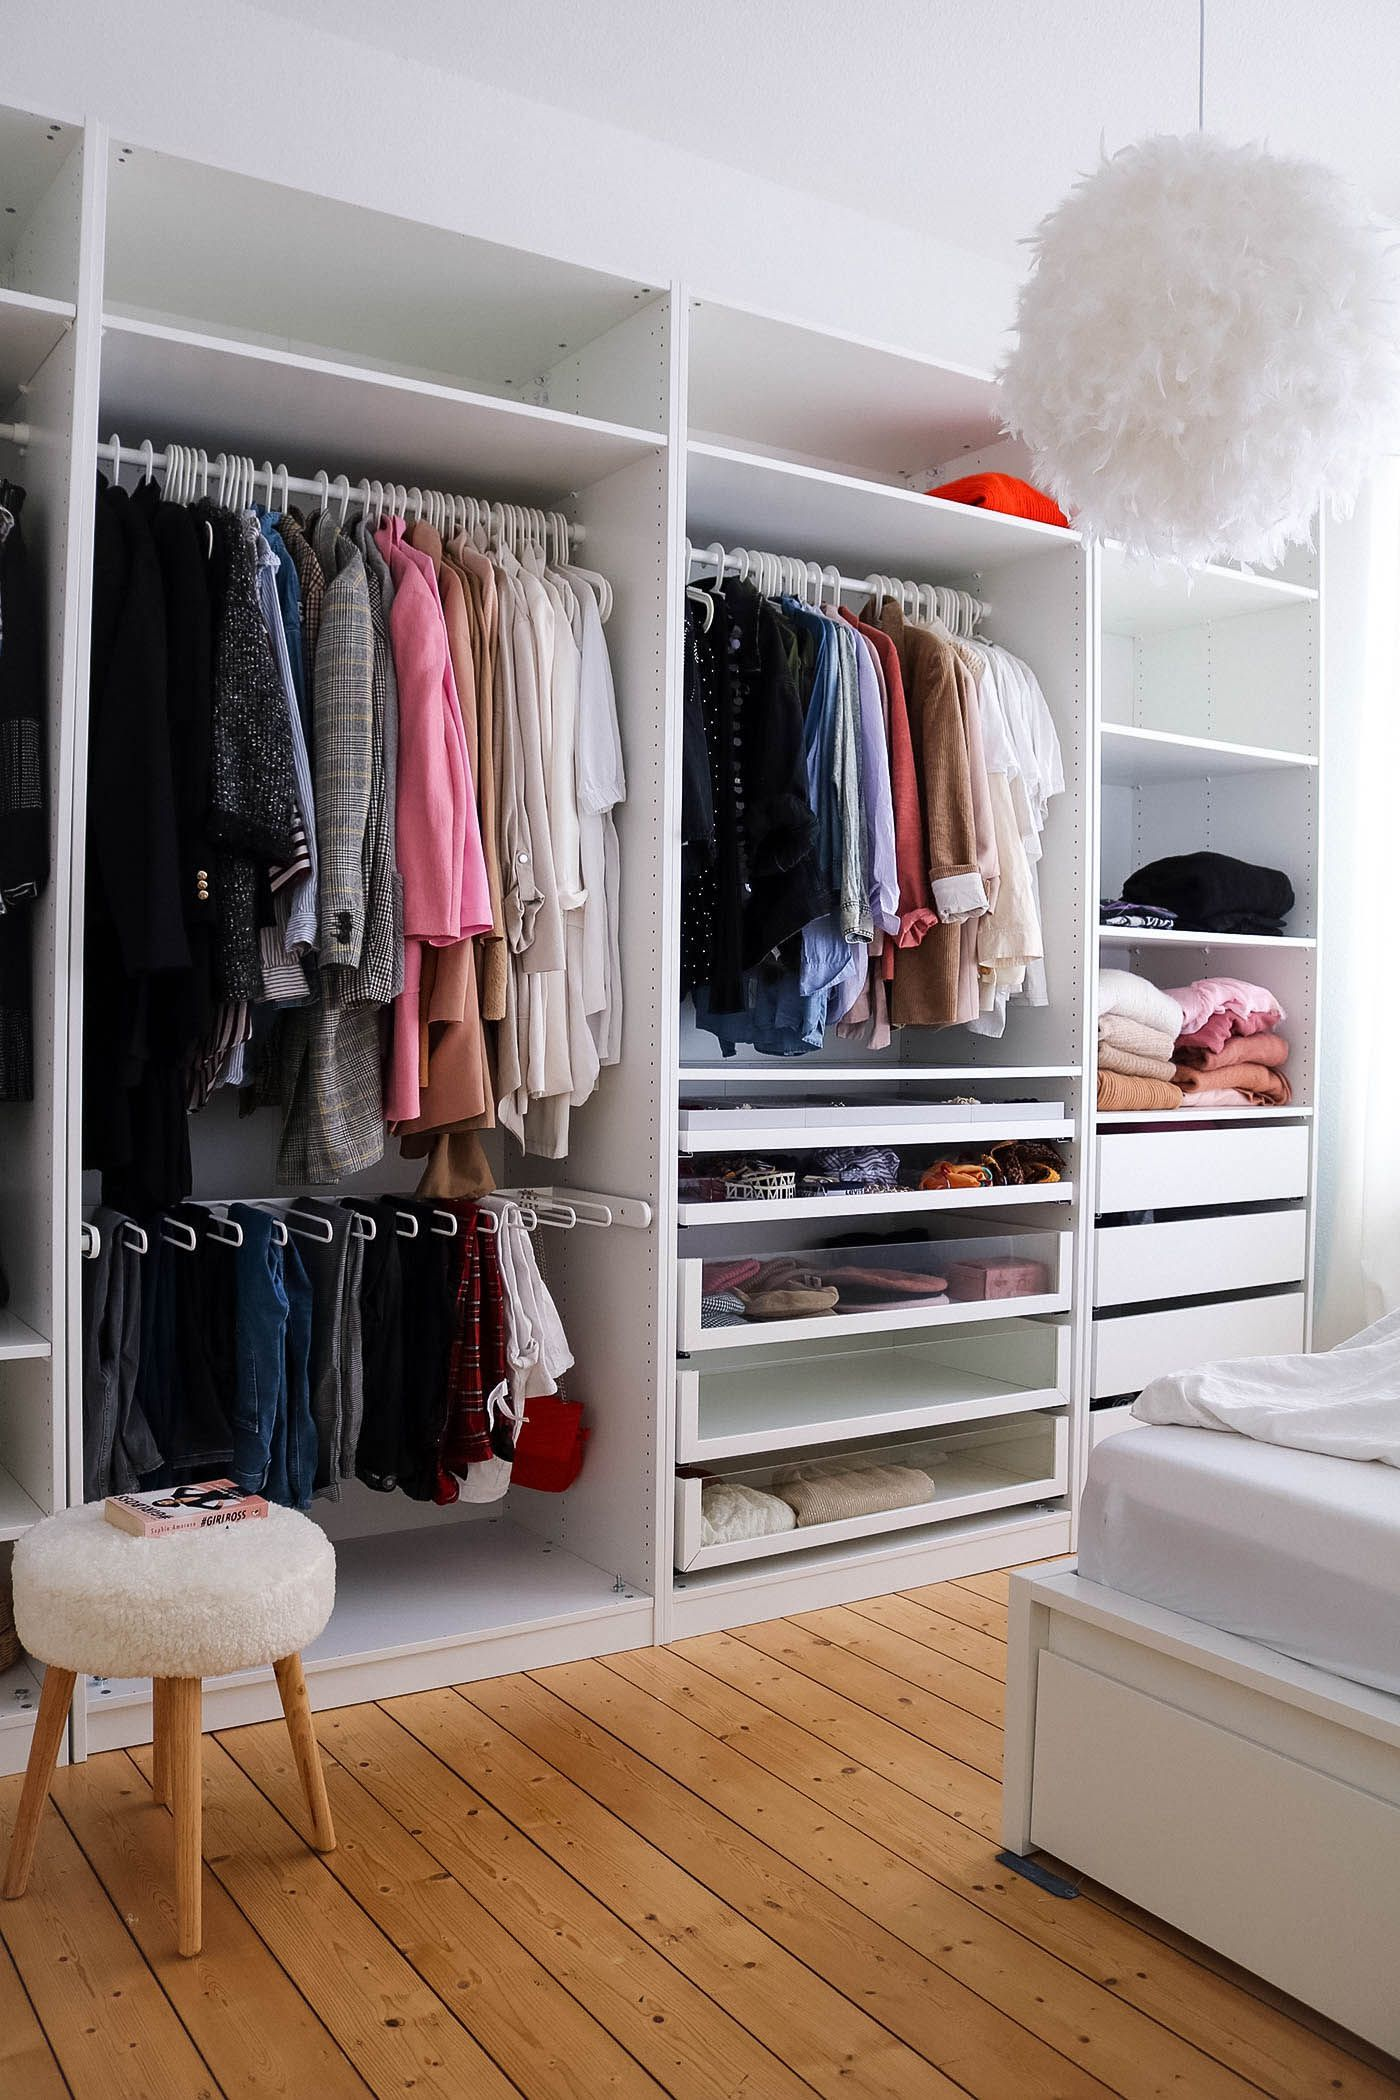 Excellent Photos Flat Home Interior Ikea Pax Wardrobe Inspo Apartment Bedroom Tips There Is Nothing Greater When Co Ikea Pax Wardrobe Ikea Pax Ikea Wardrobe